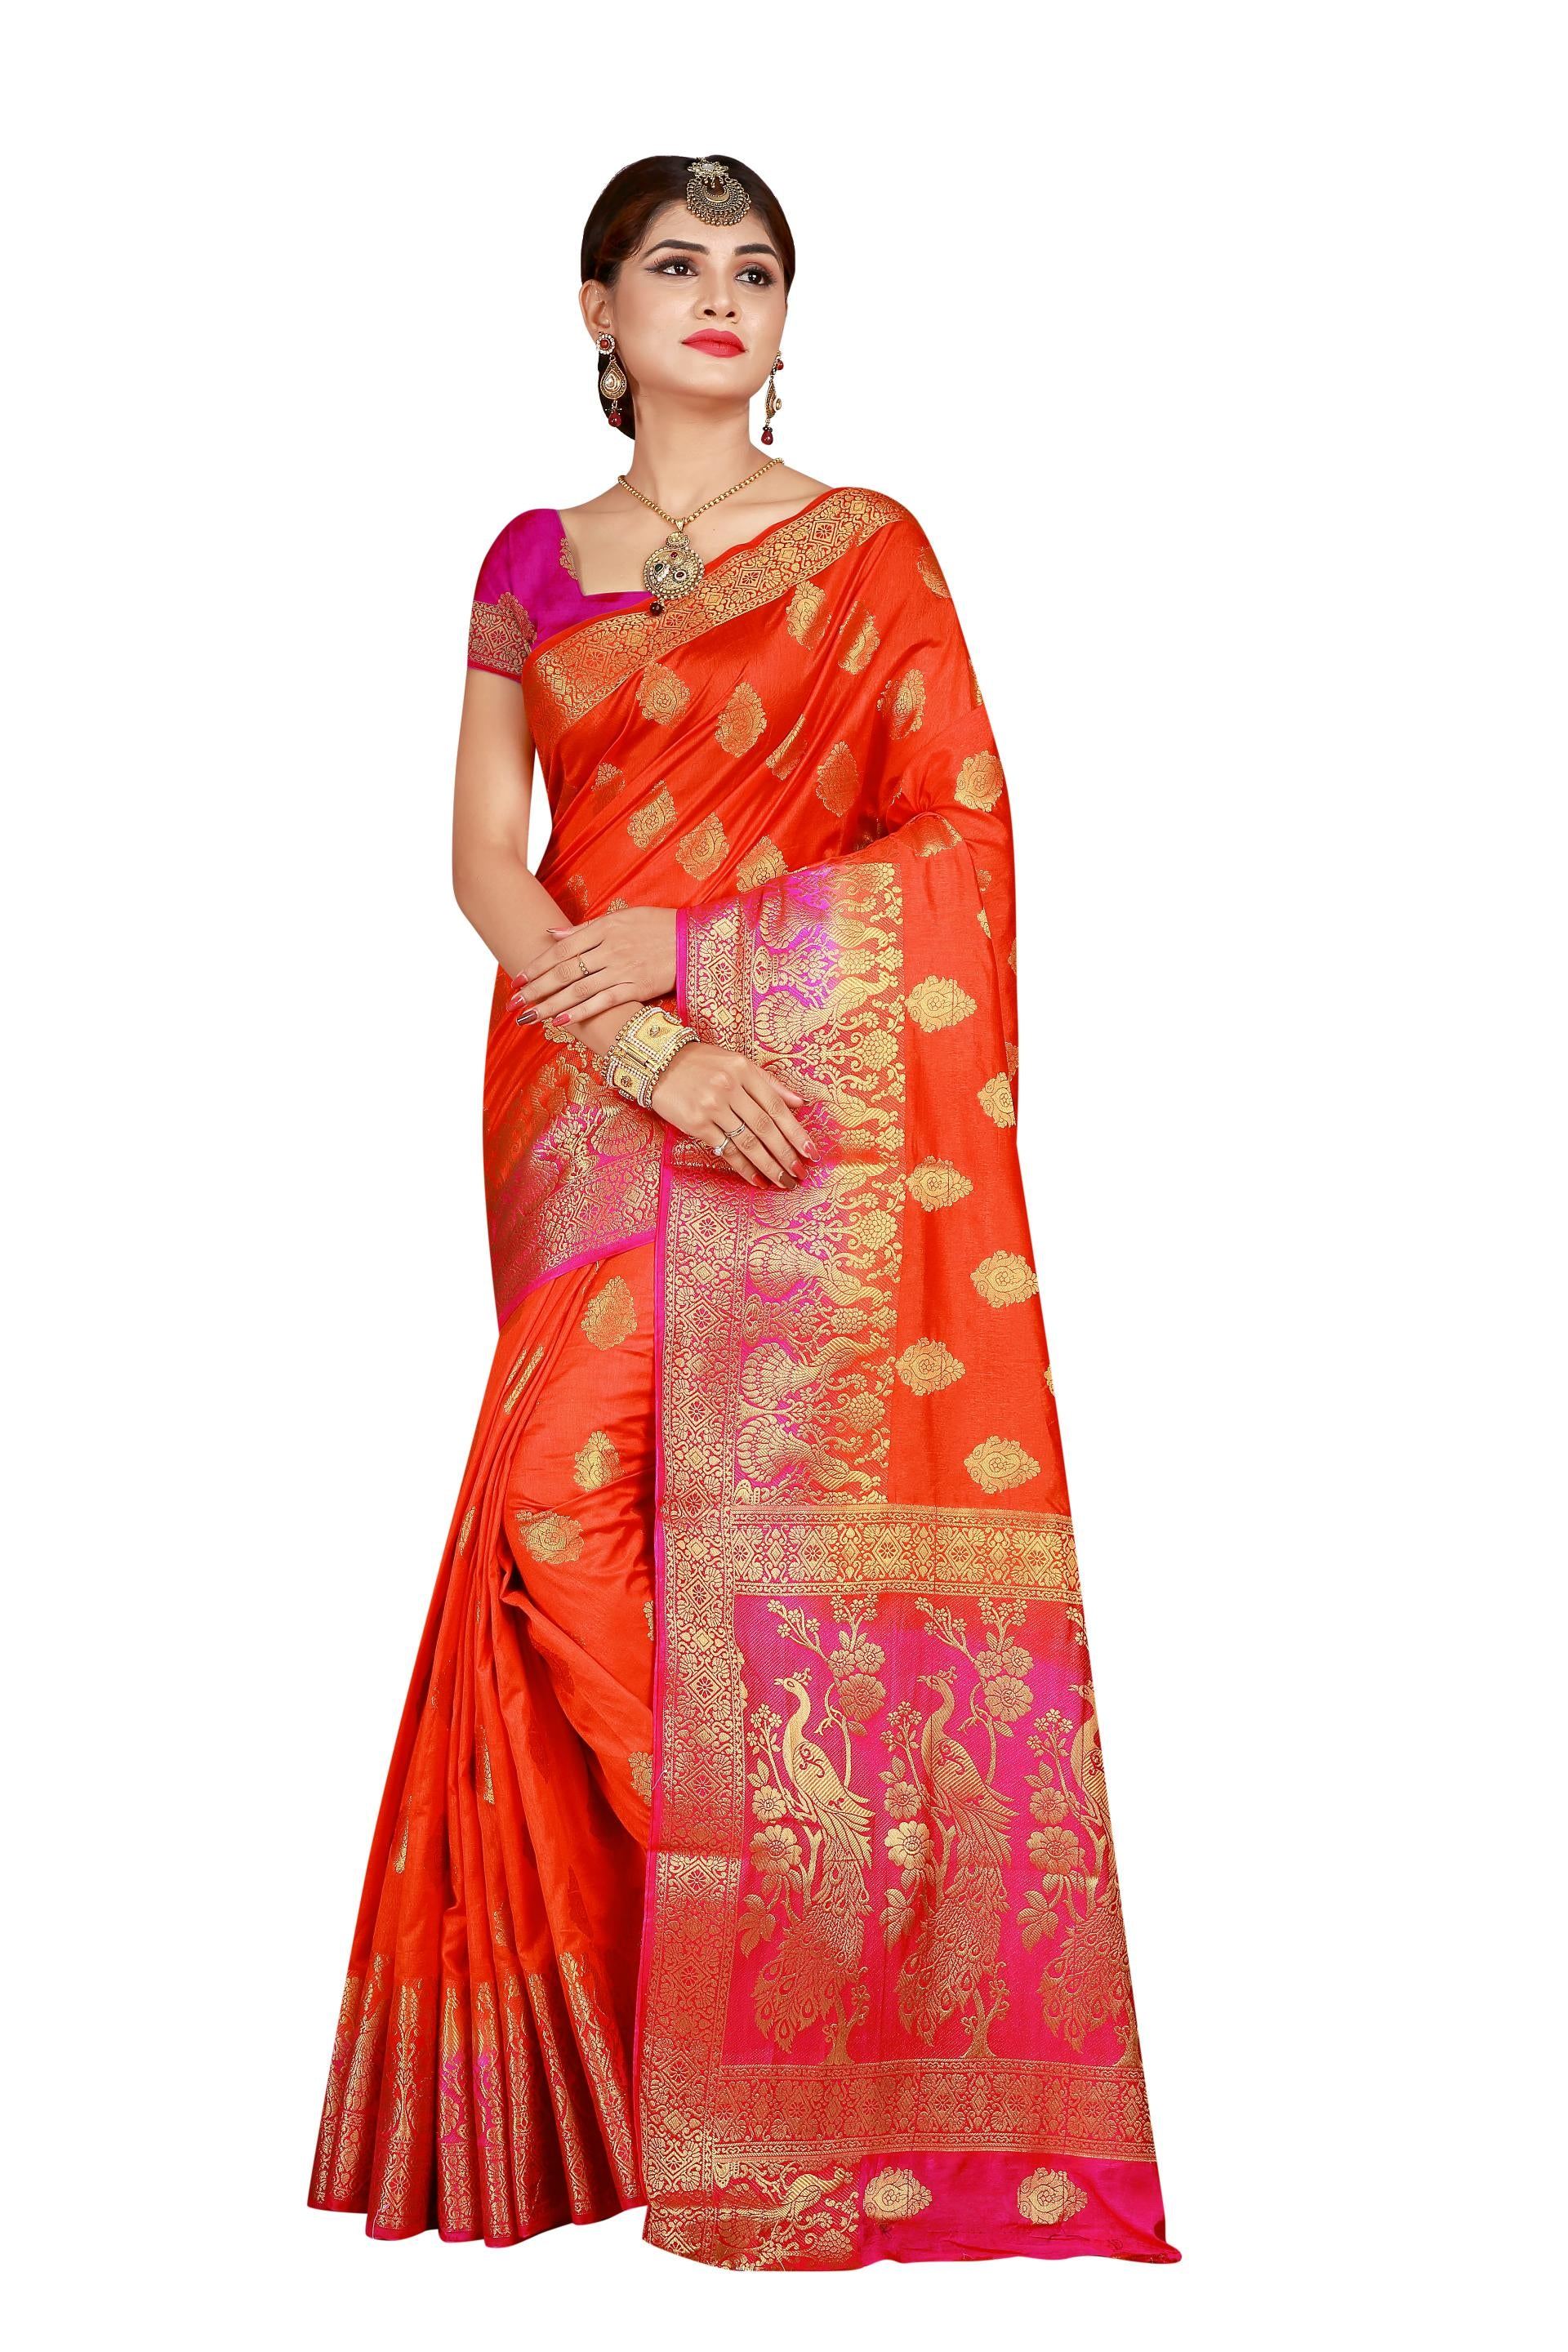 Mira Orange heavy Designer Soft SIlk Banarasi Saree 2097